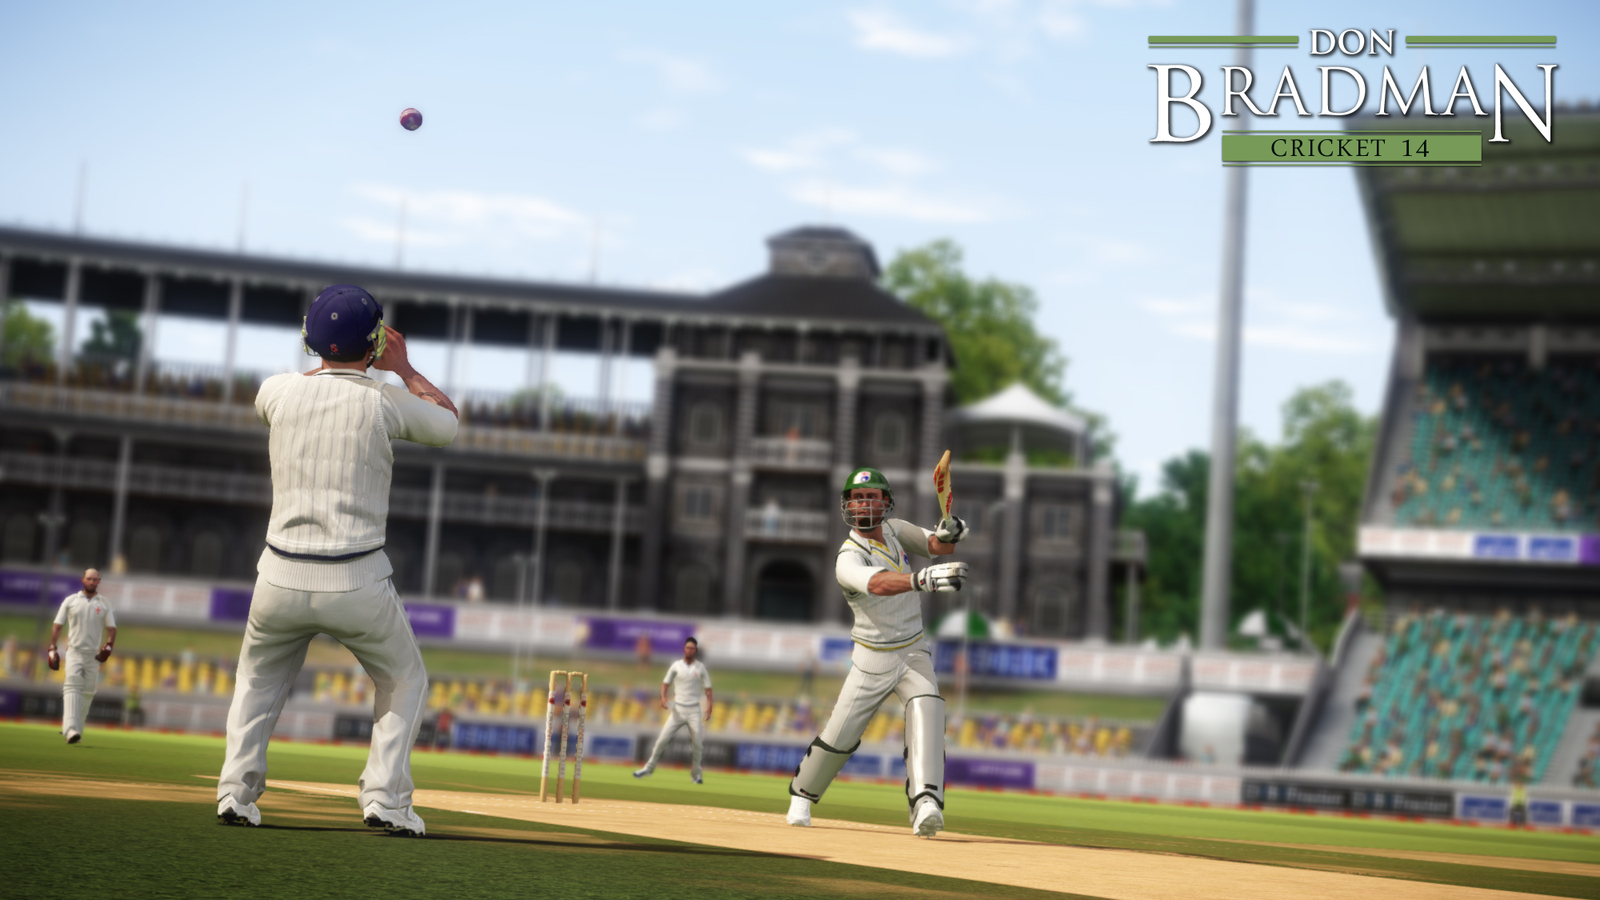 Don Bradman Cricket 14 for PS3 image